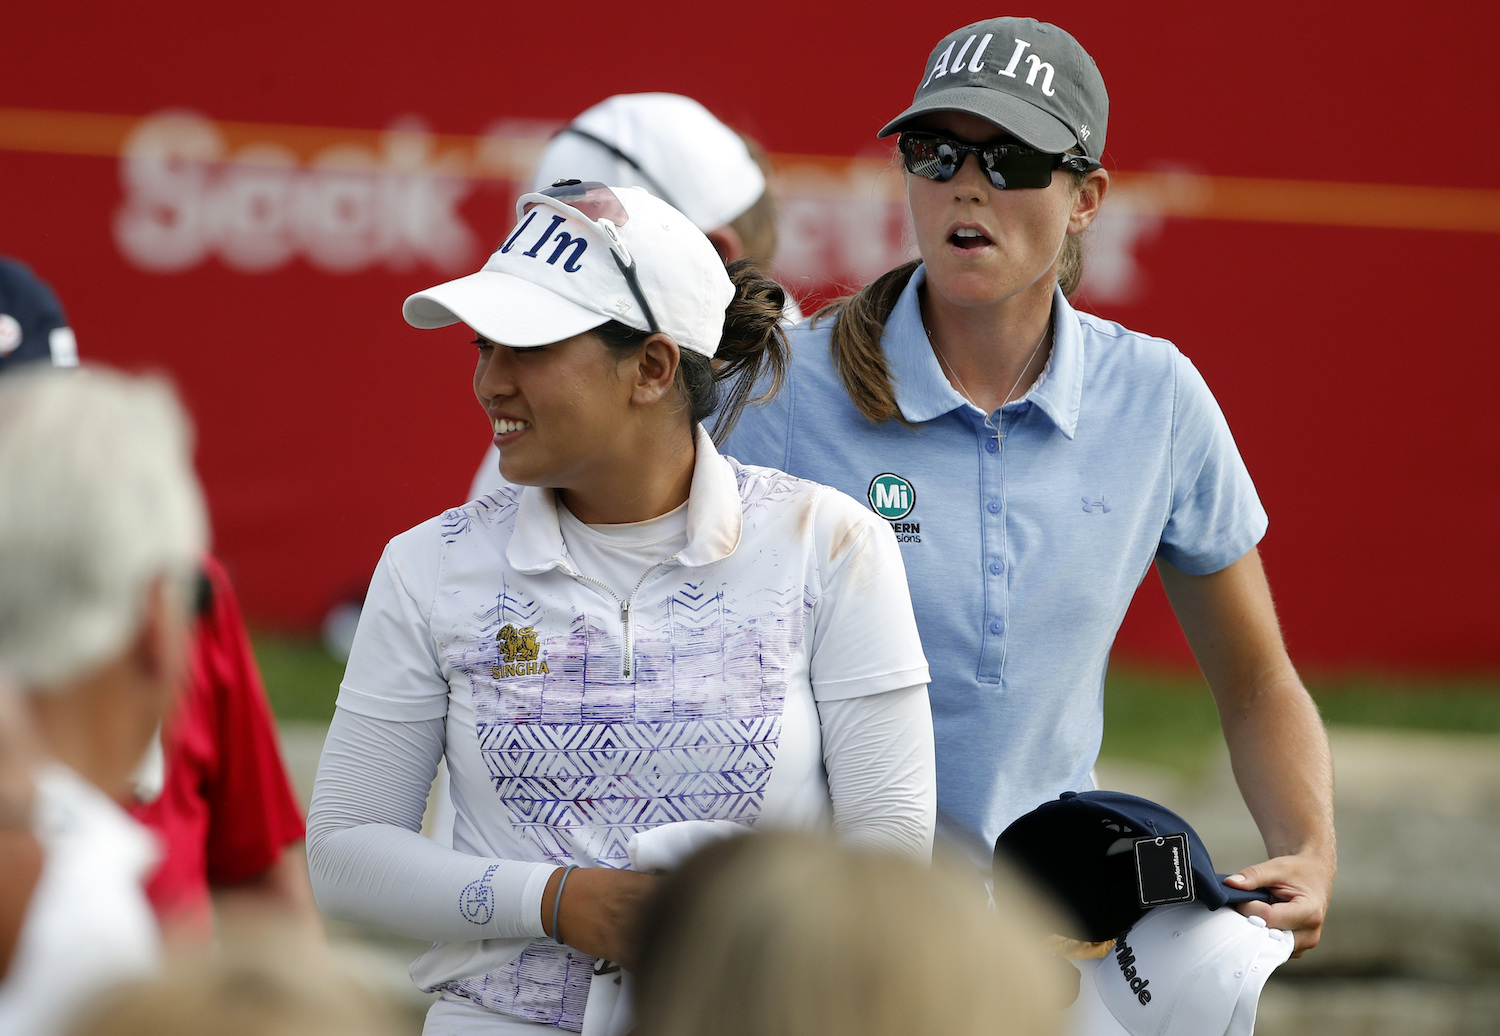 Clanton, Suwannapura lead at LPGA team event